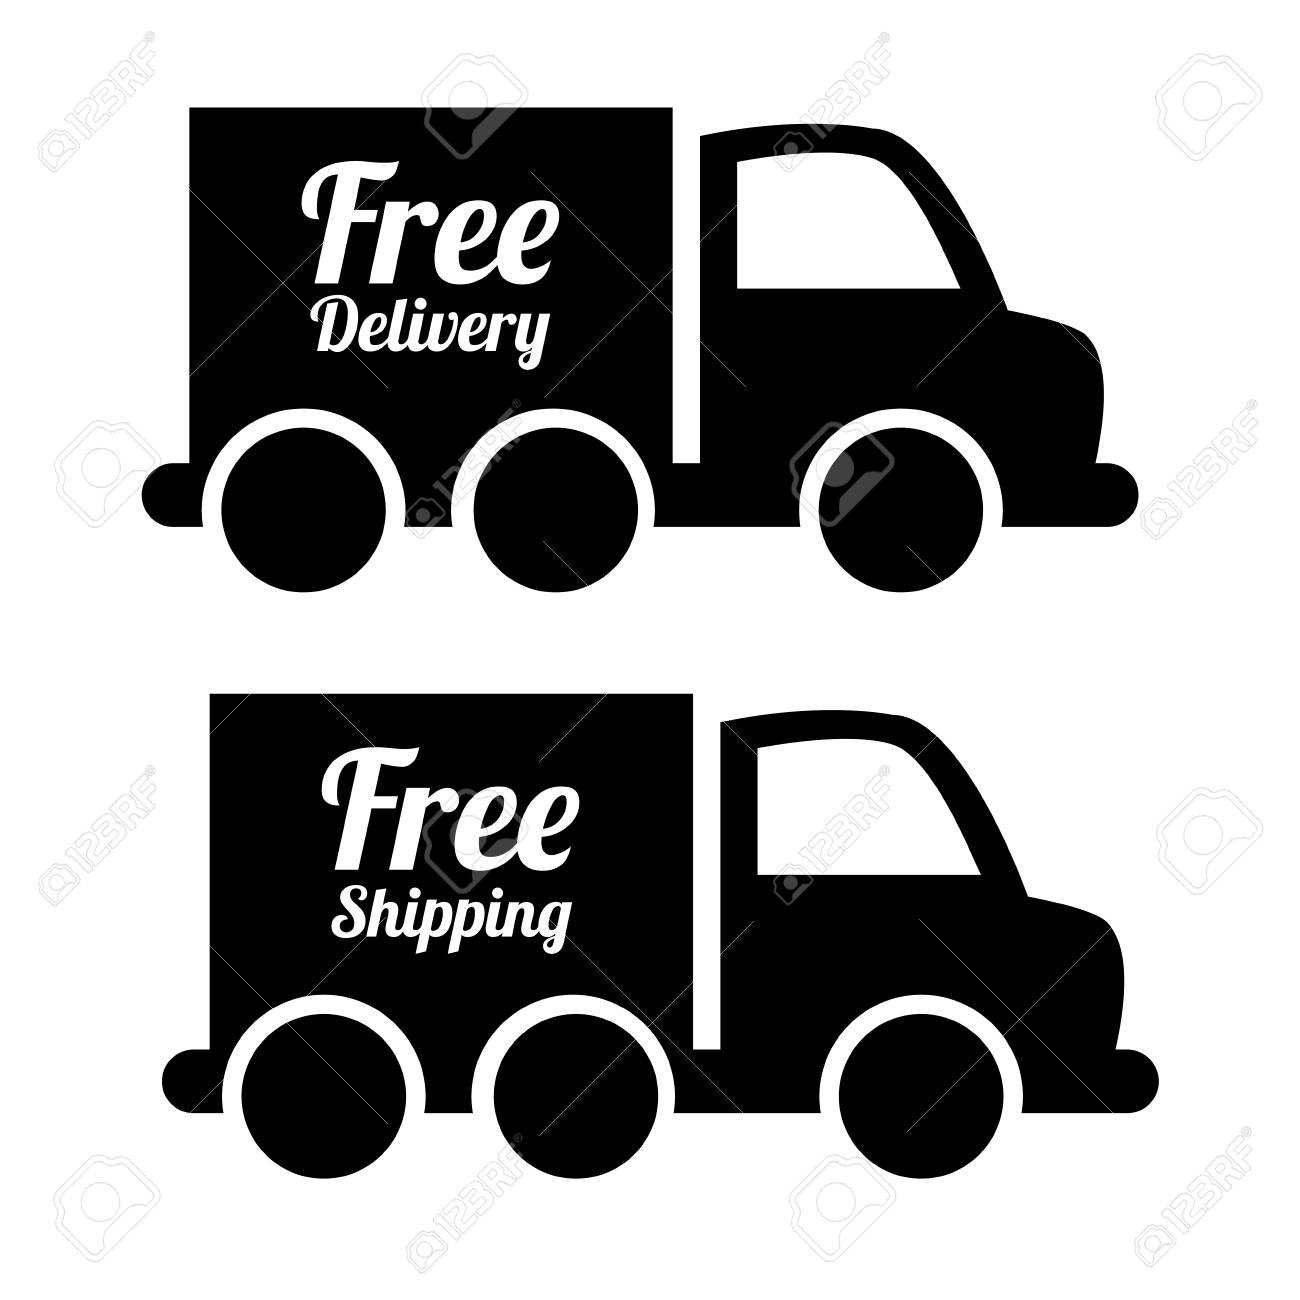 Delivery design over white background, vector illustration Stock Vector - 27767207